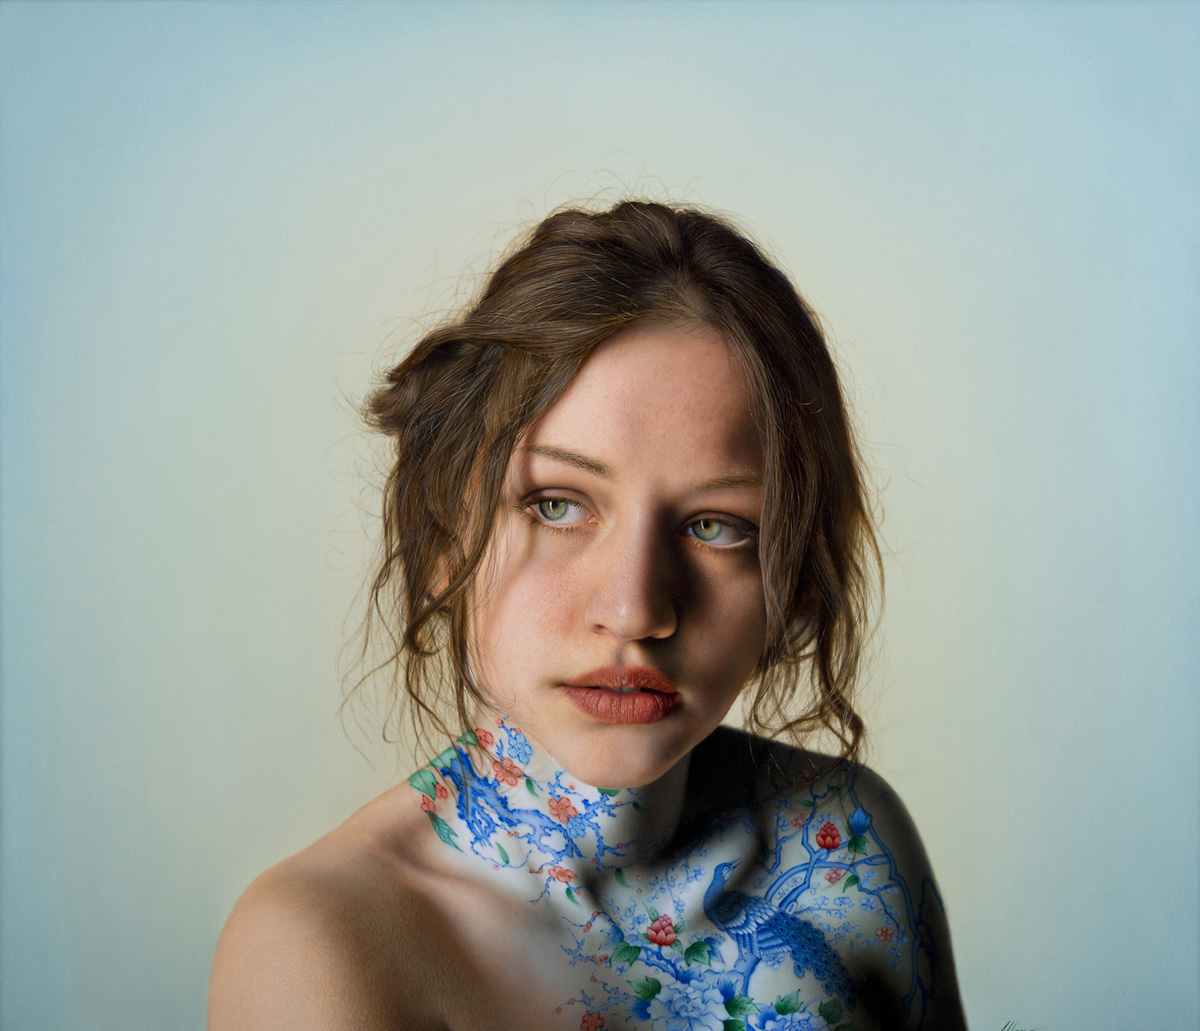 4-hyper-realistic-portrait-painting-by-marco-grassi